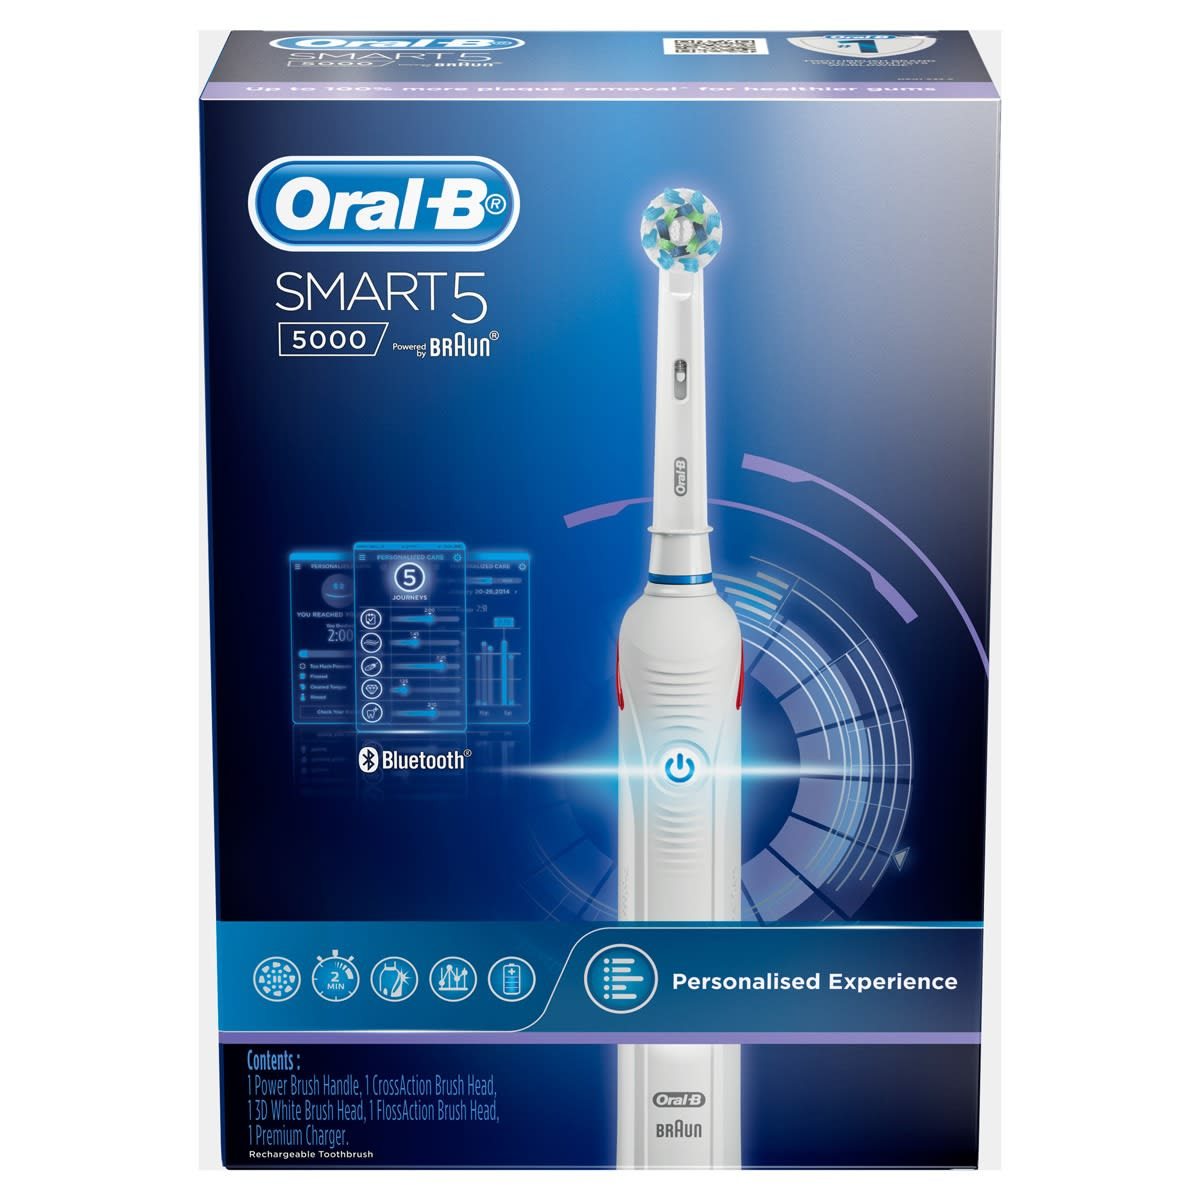 Oral-B Smart 5 5000 Electric Toothbrush